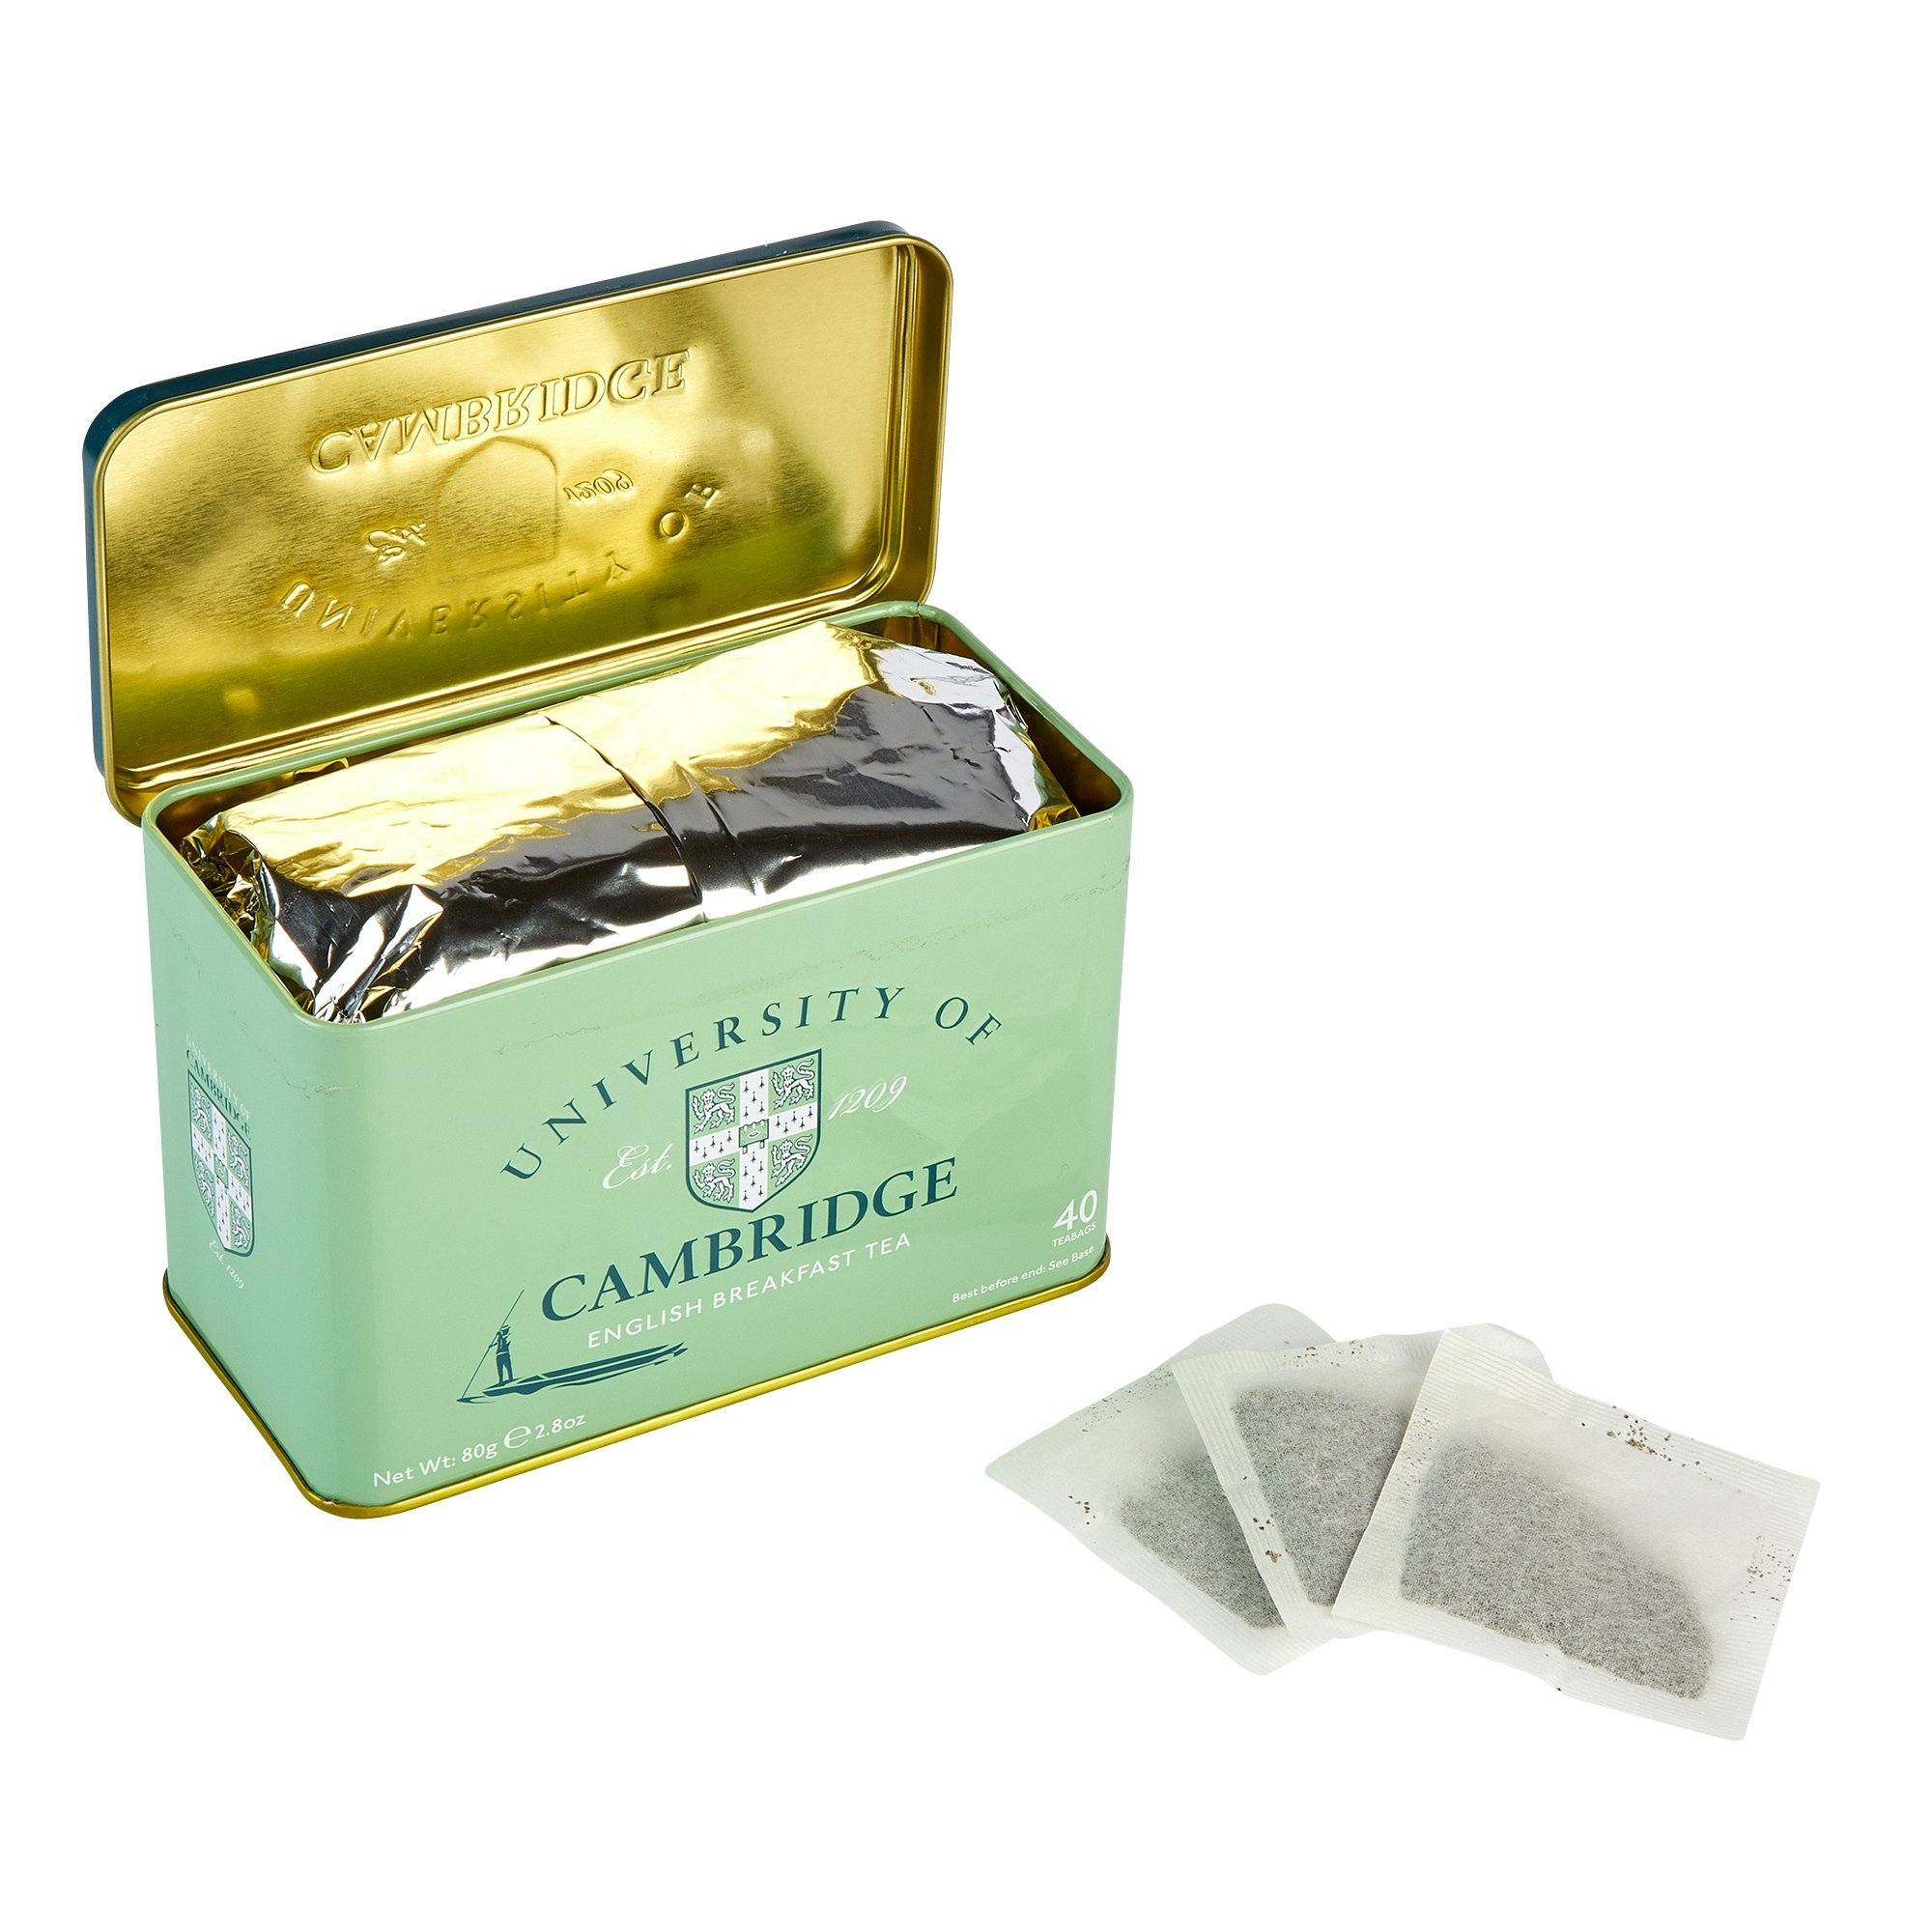 University Of Cambridge English Breakfast Tea Tin 40 Teabags Black Tea New English Teas